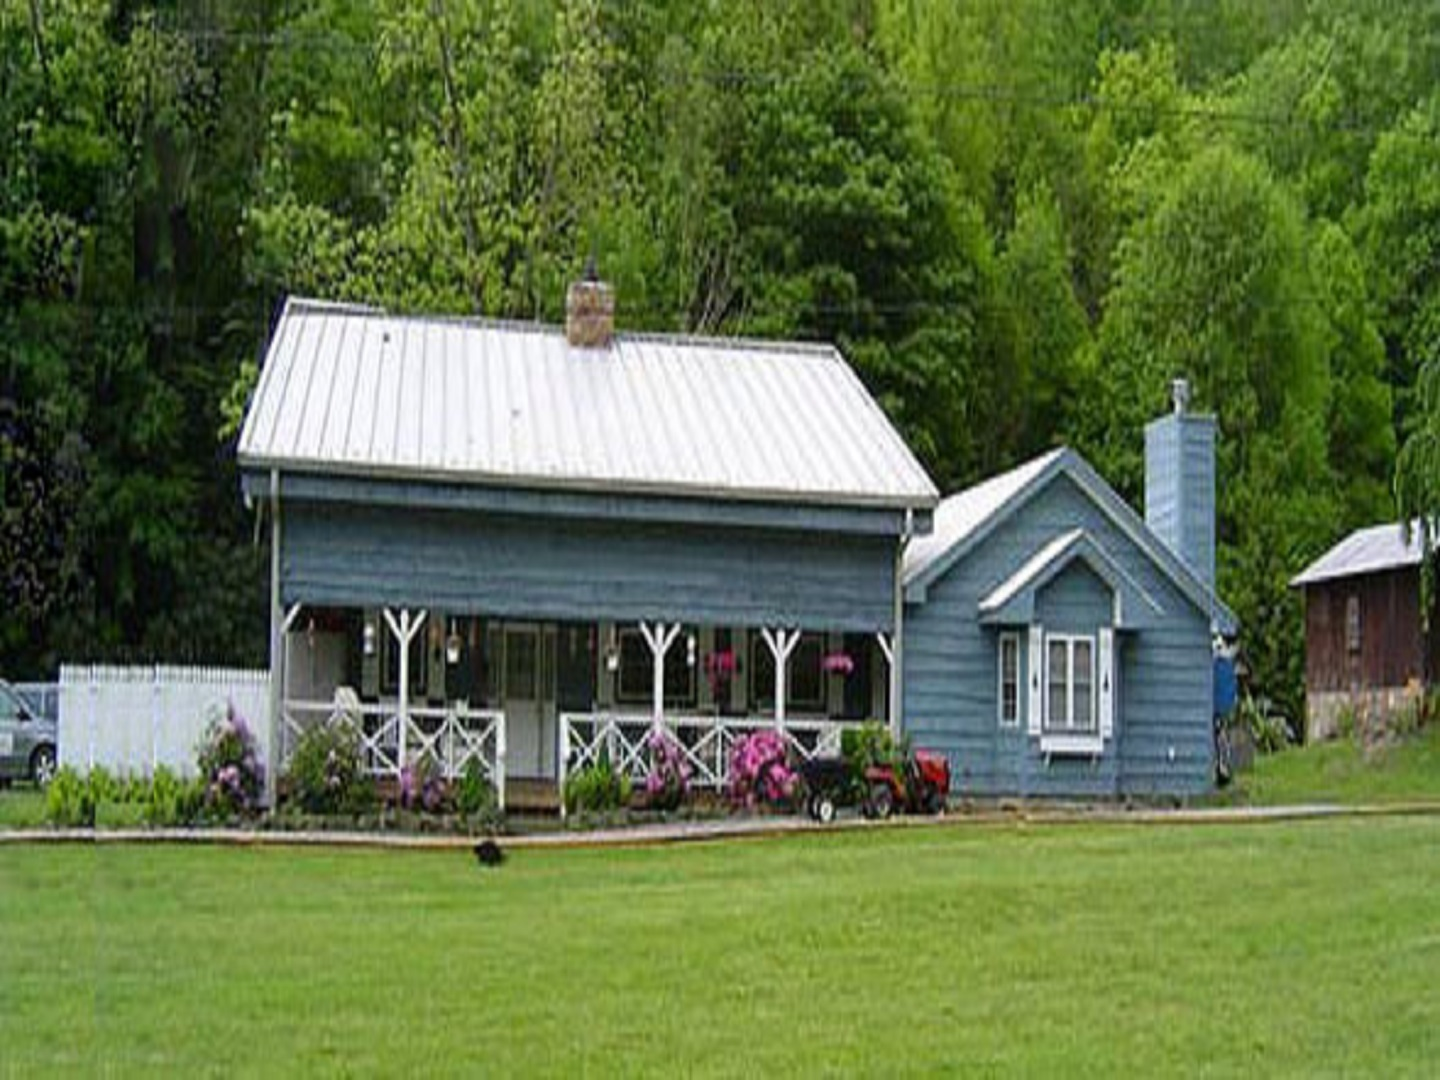 A group of people in front of a house at Misty Mountain Ranch B&B & Cabins.